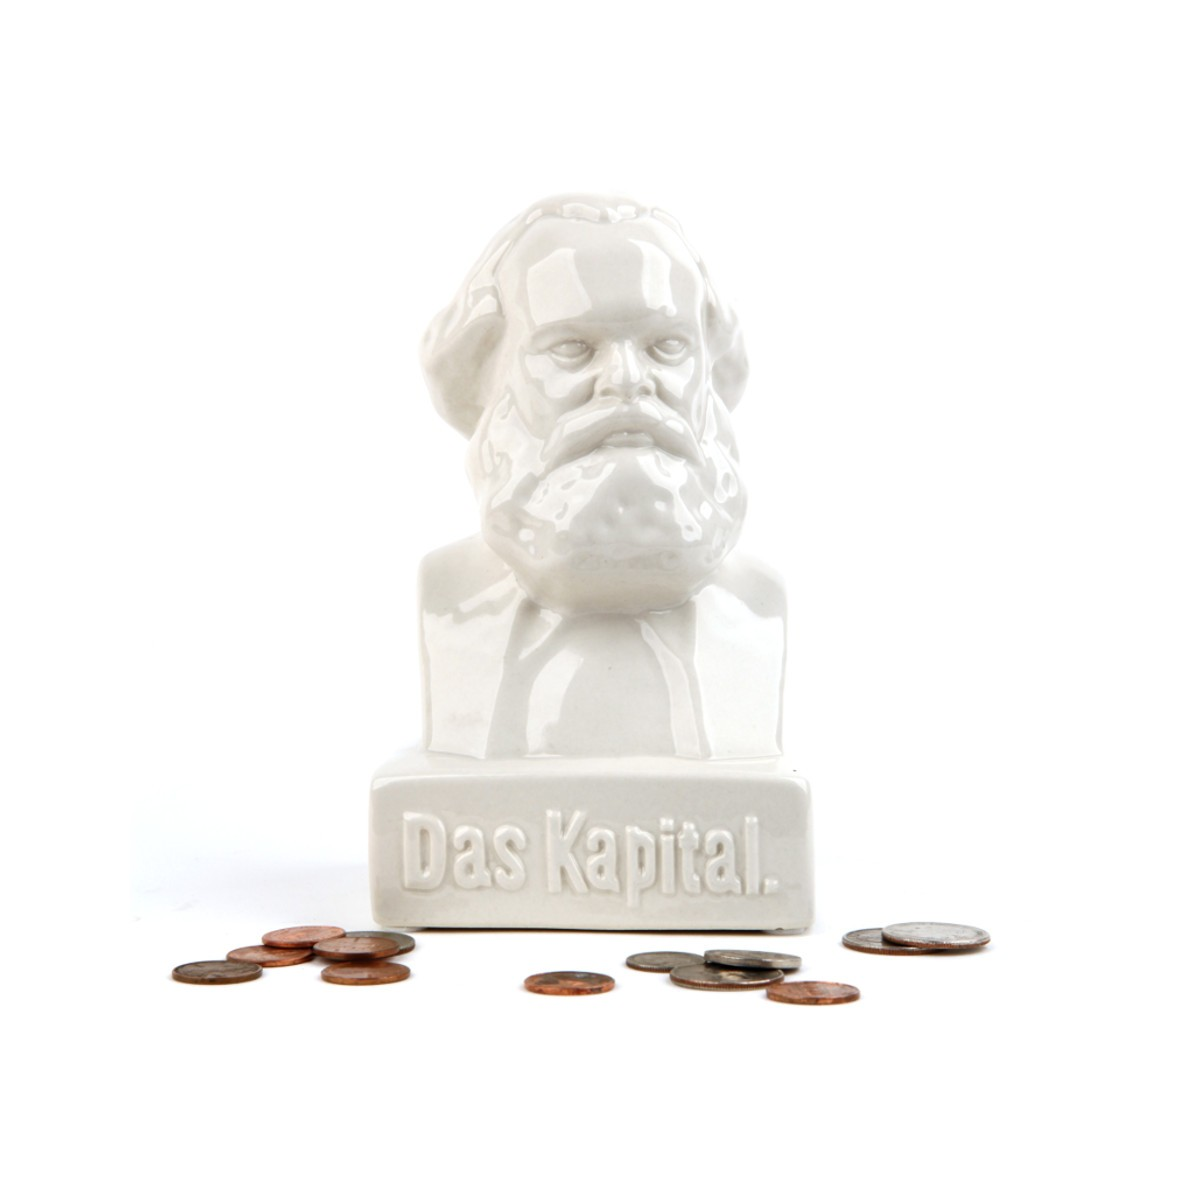 "KARL MARX MONEY BANK ""DAS KAPITAL"""